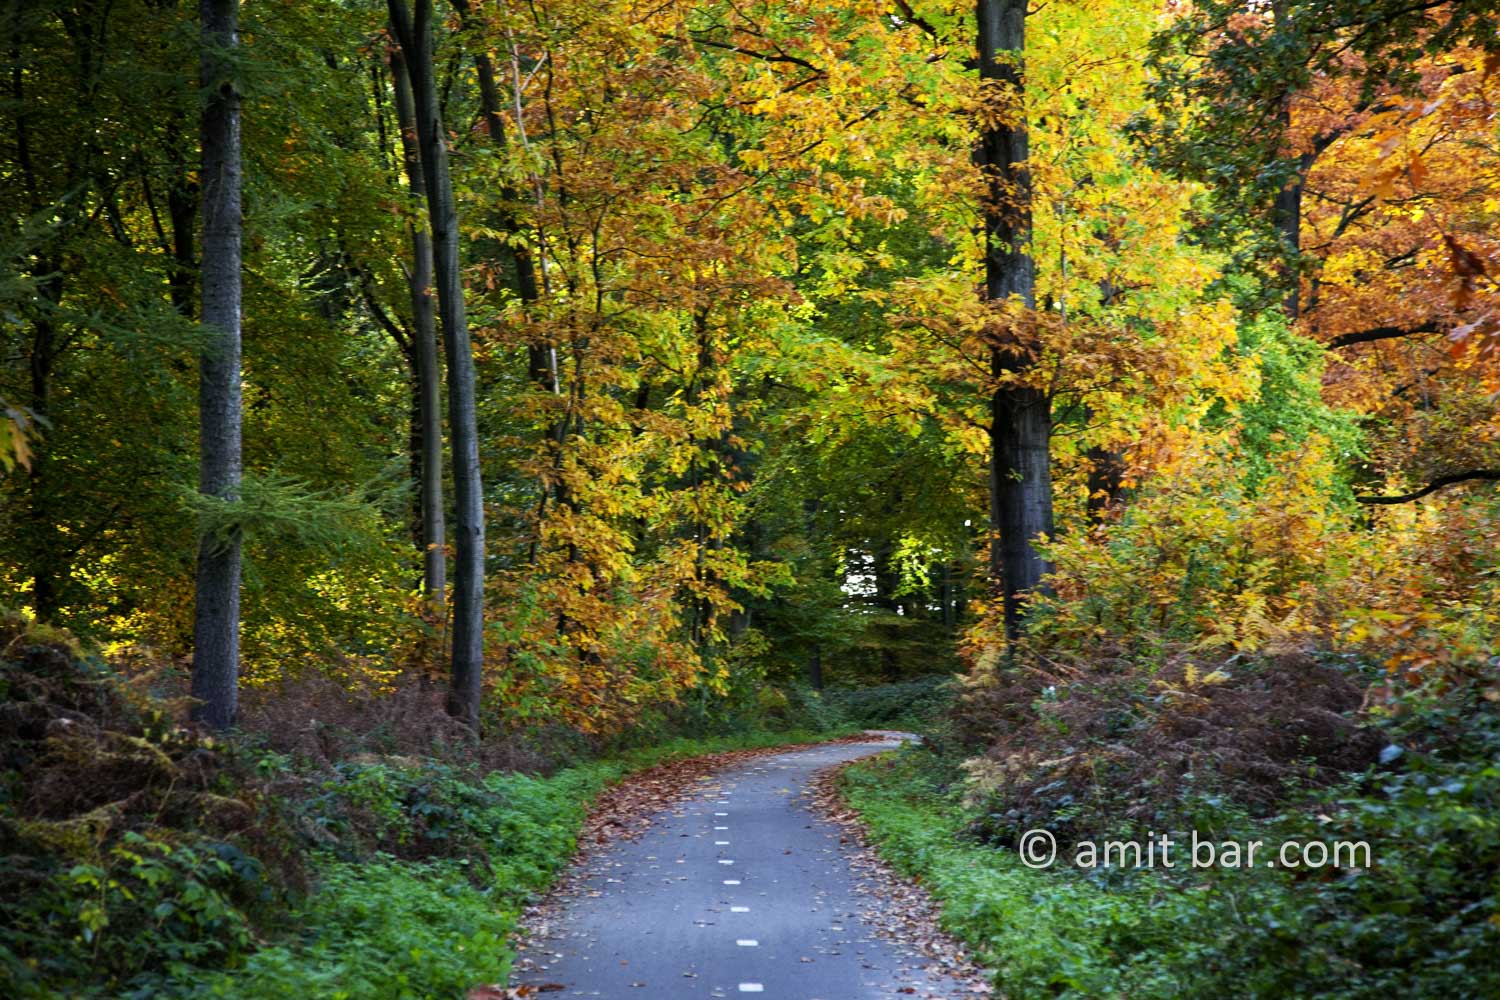 Autumn trees V: Autumn in De Achterhoek, The Netherlands